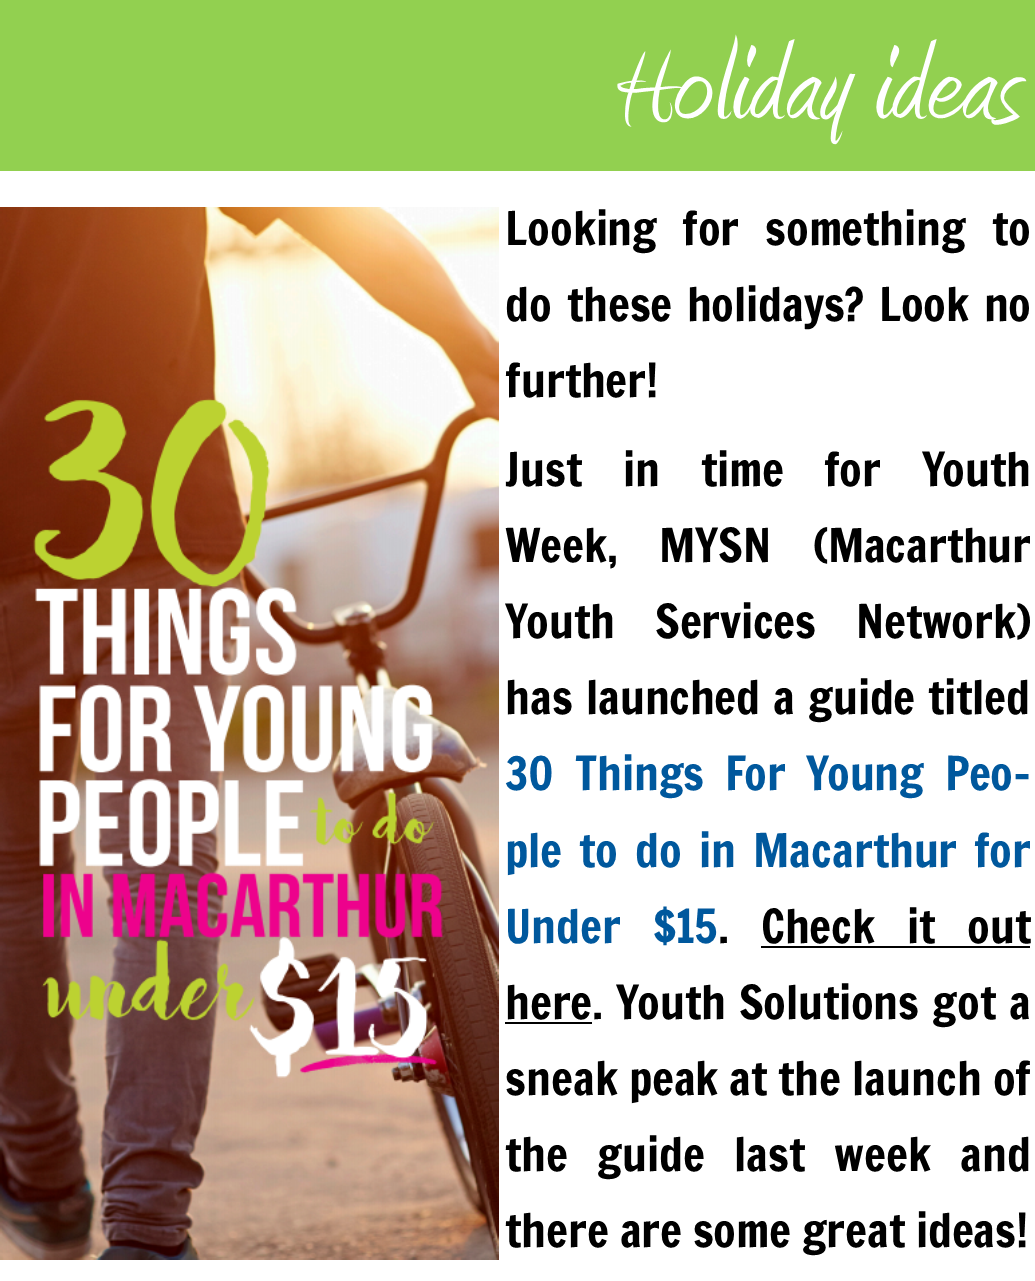 30 things for young people to do in Macarthur under $15